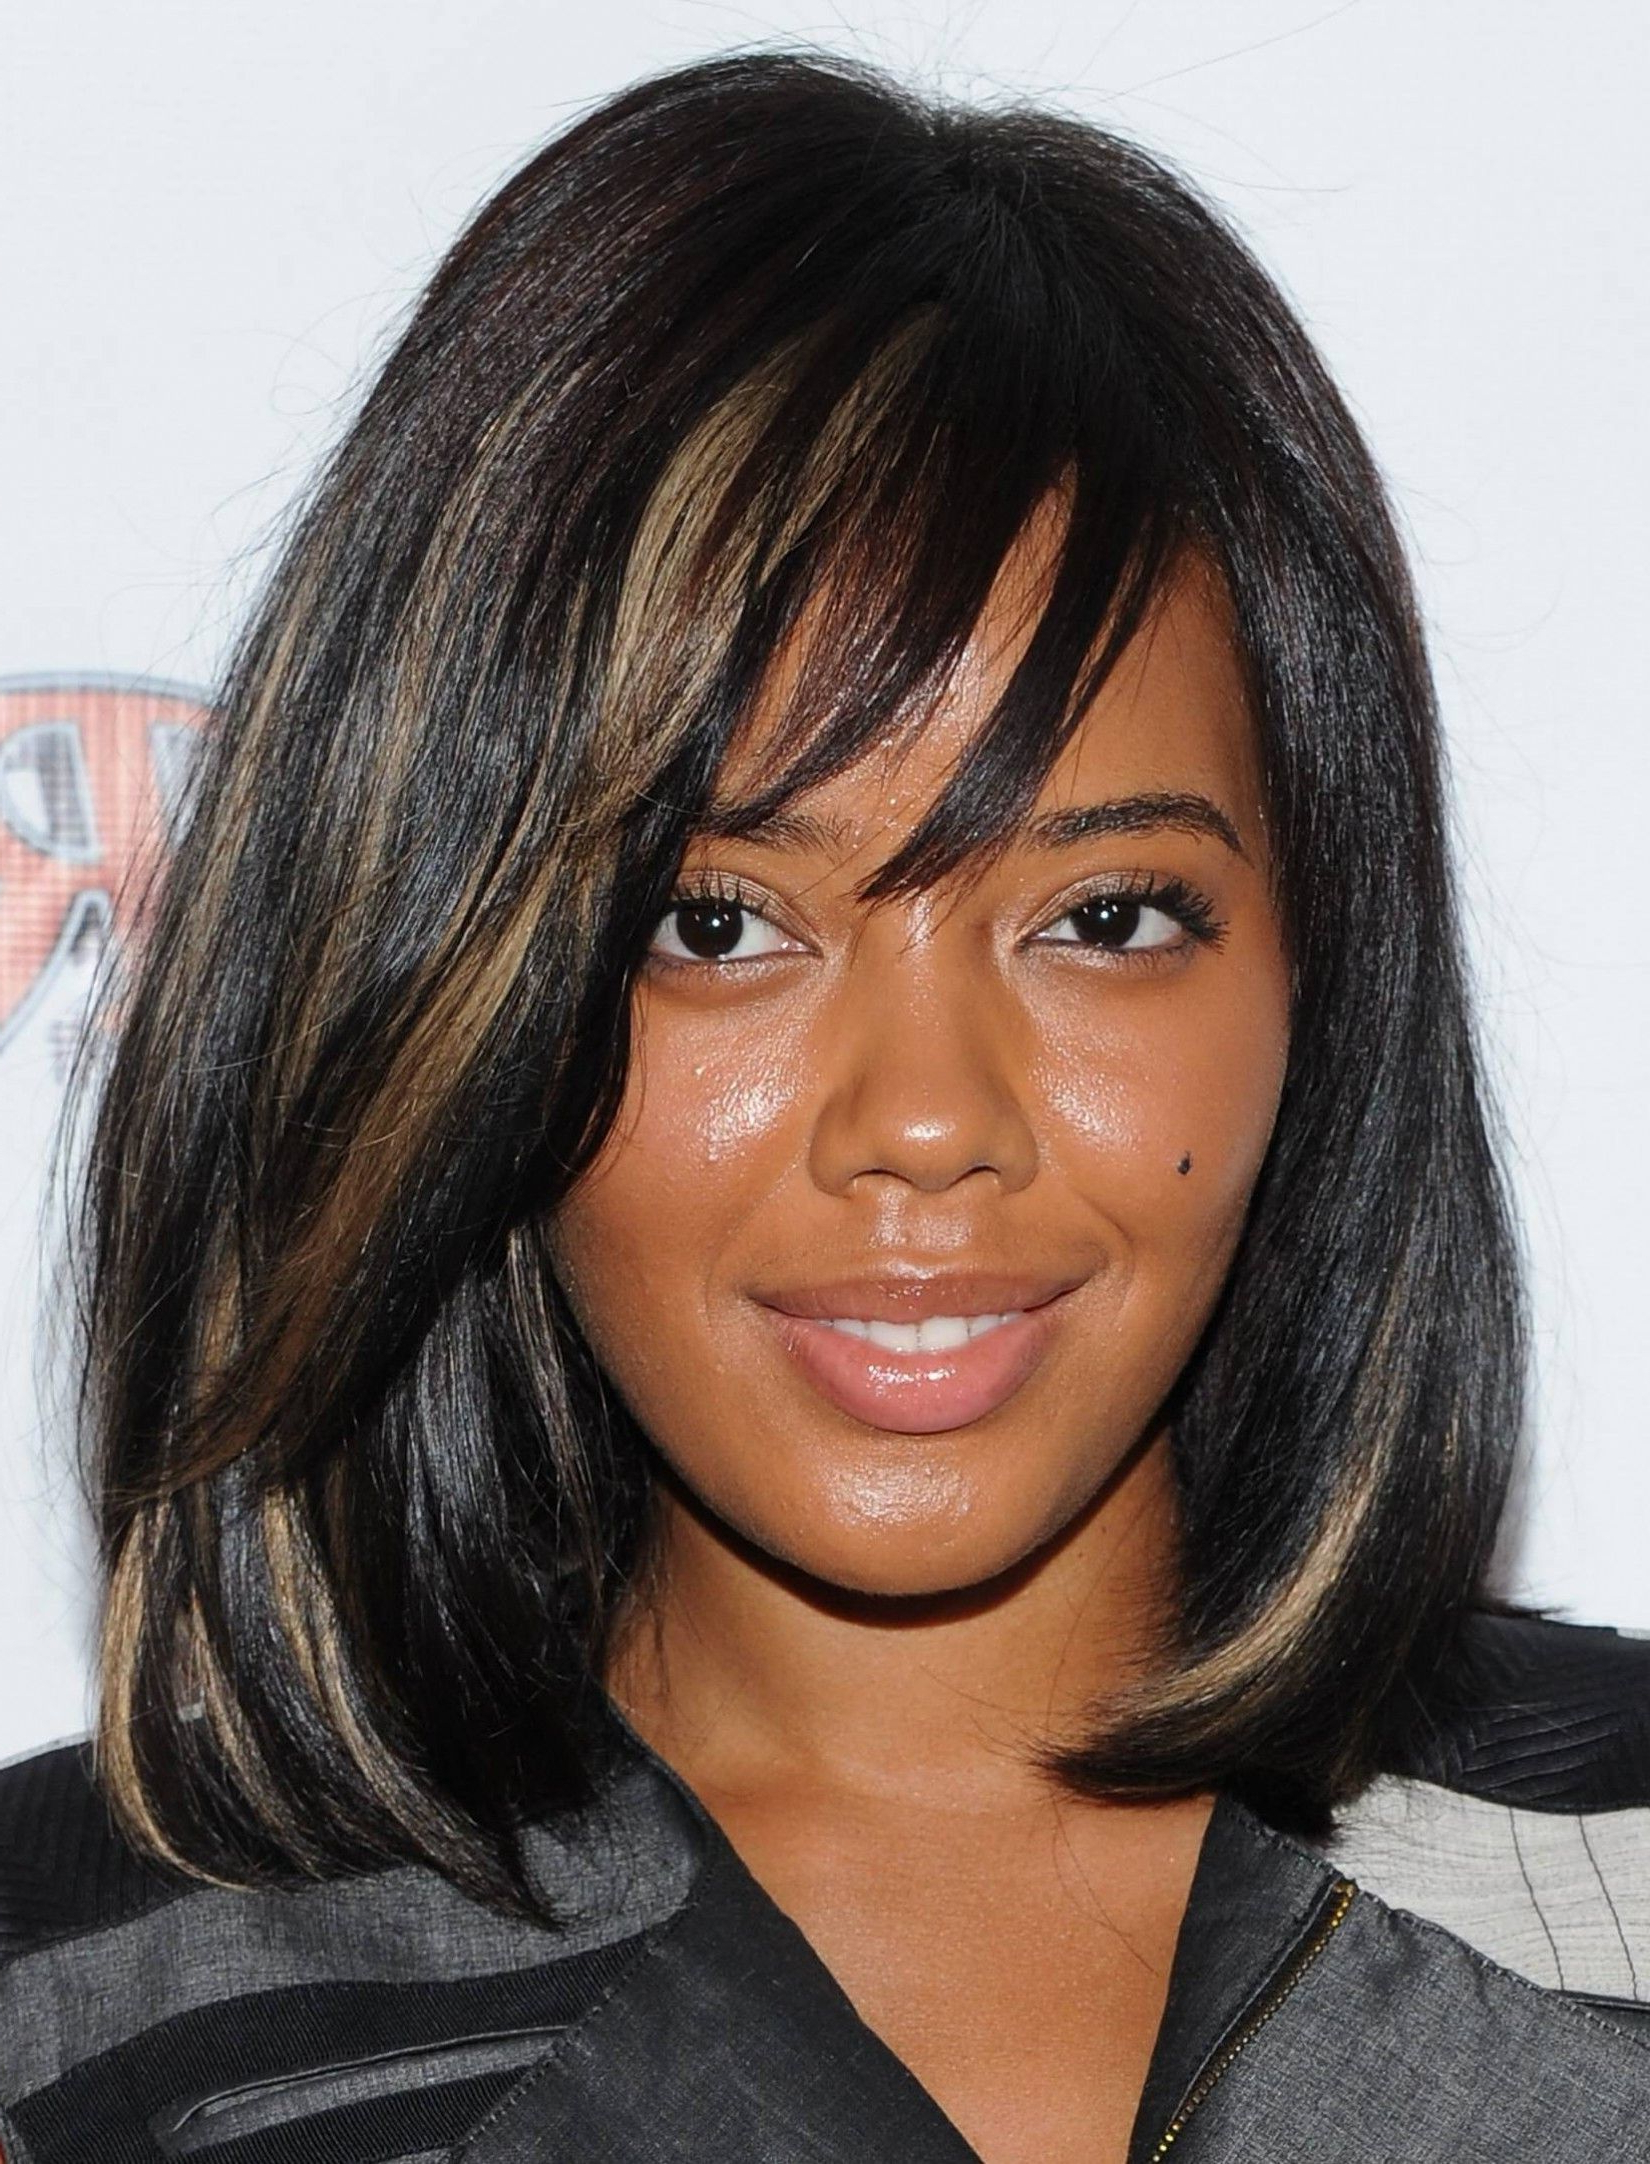 Black Medium Haircuts For Women Lenght Hair (View 2 of 20)